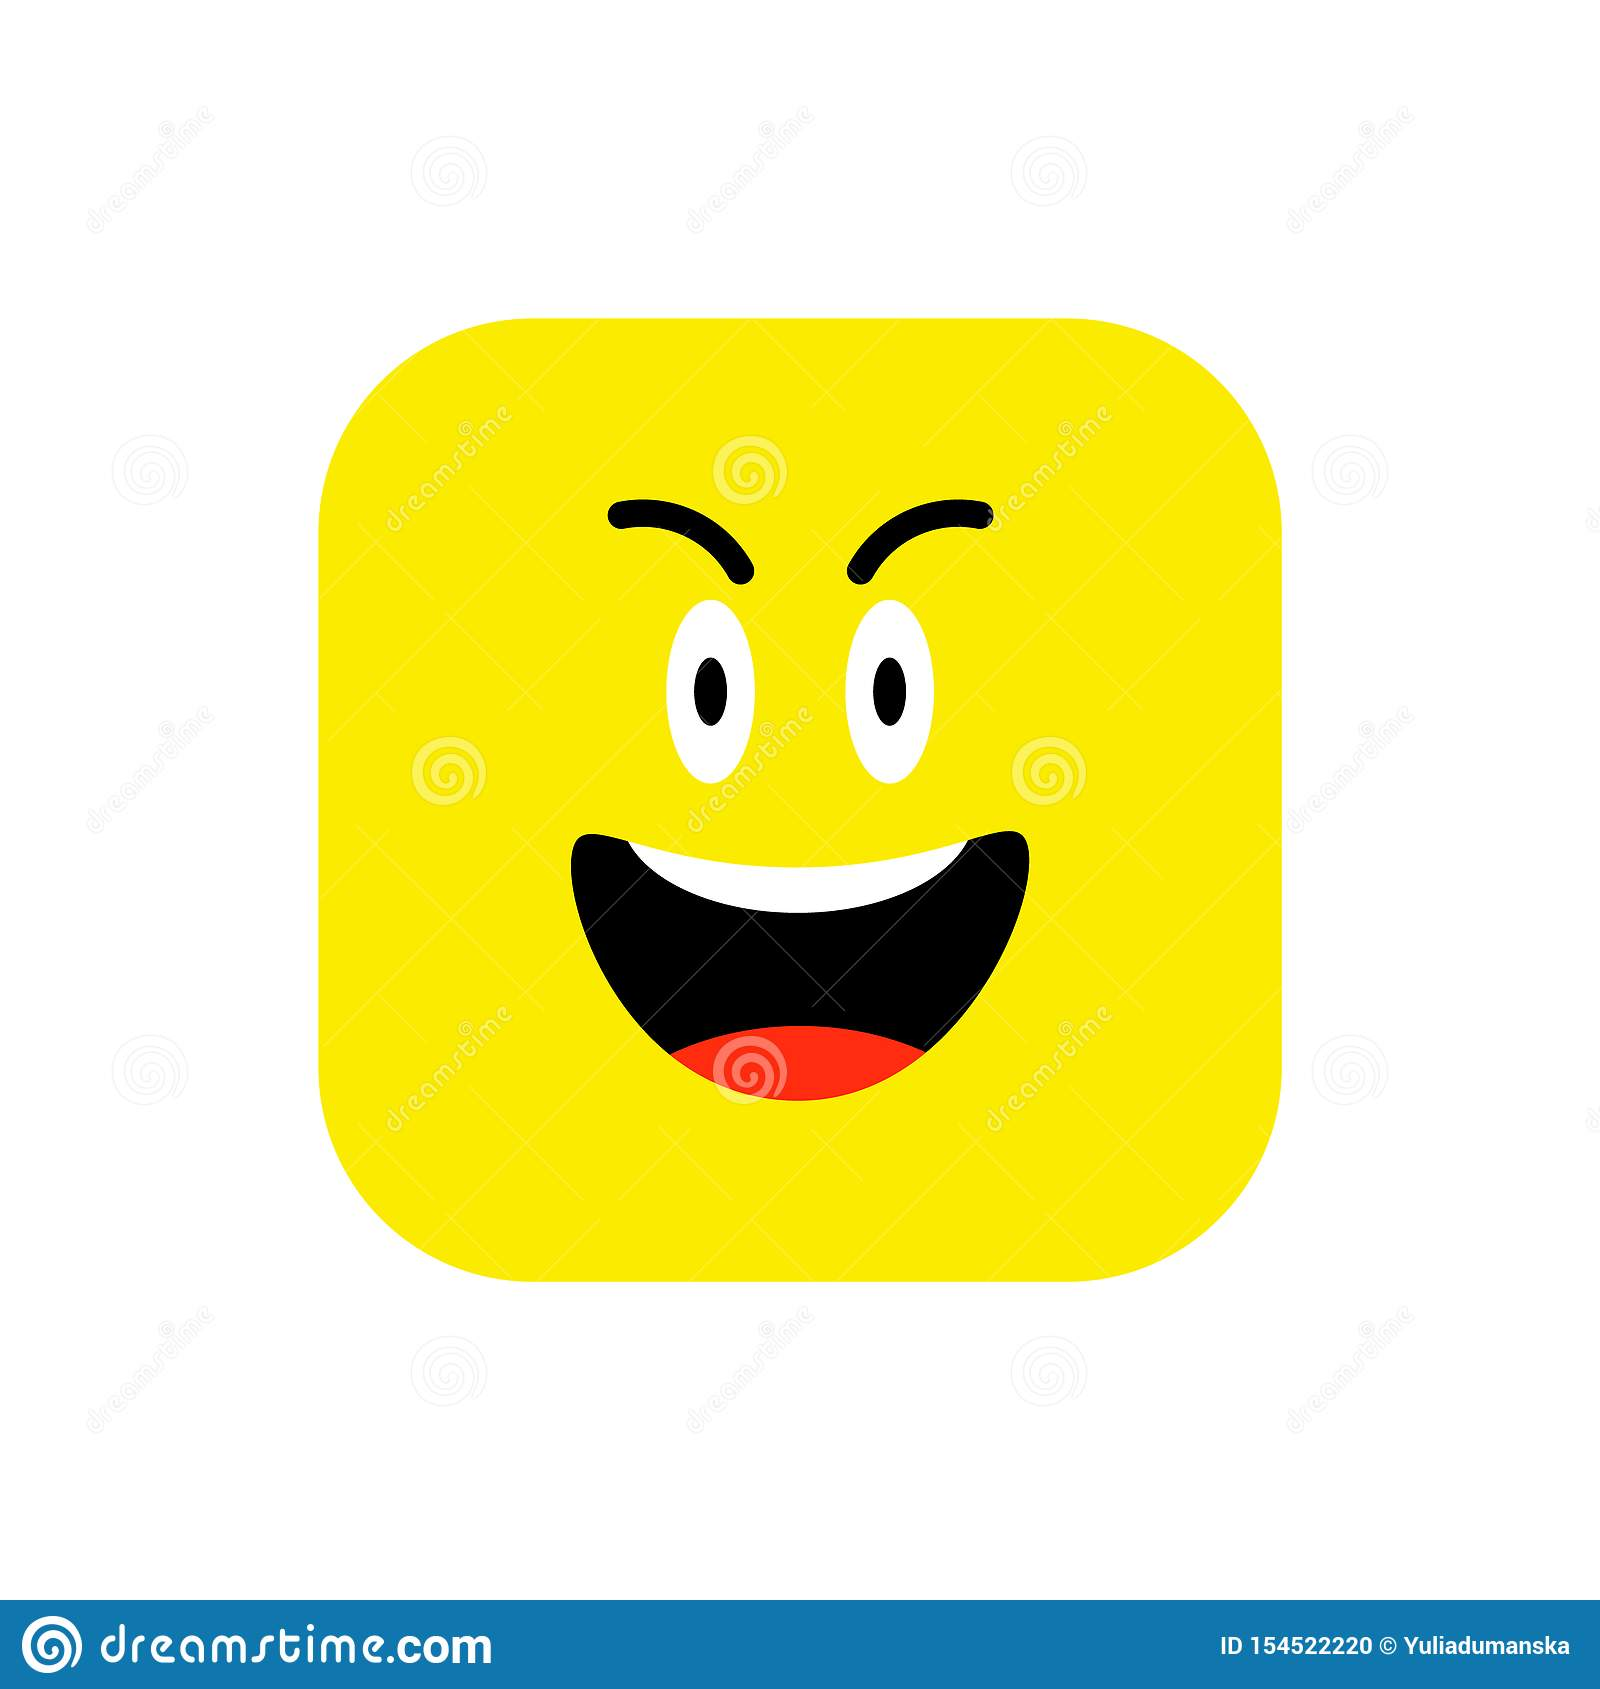 Happy Emoji icon flat style. Cute Emoticon rounded square to World Smile Day. Cheerful, Lol, Enjoying Face. Colorful